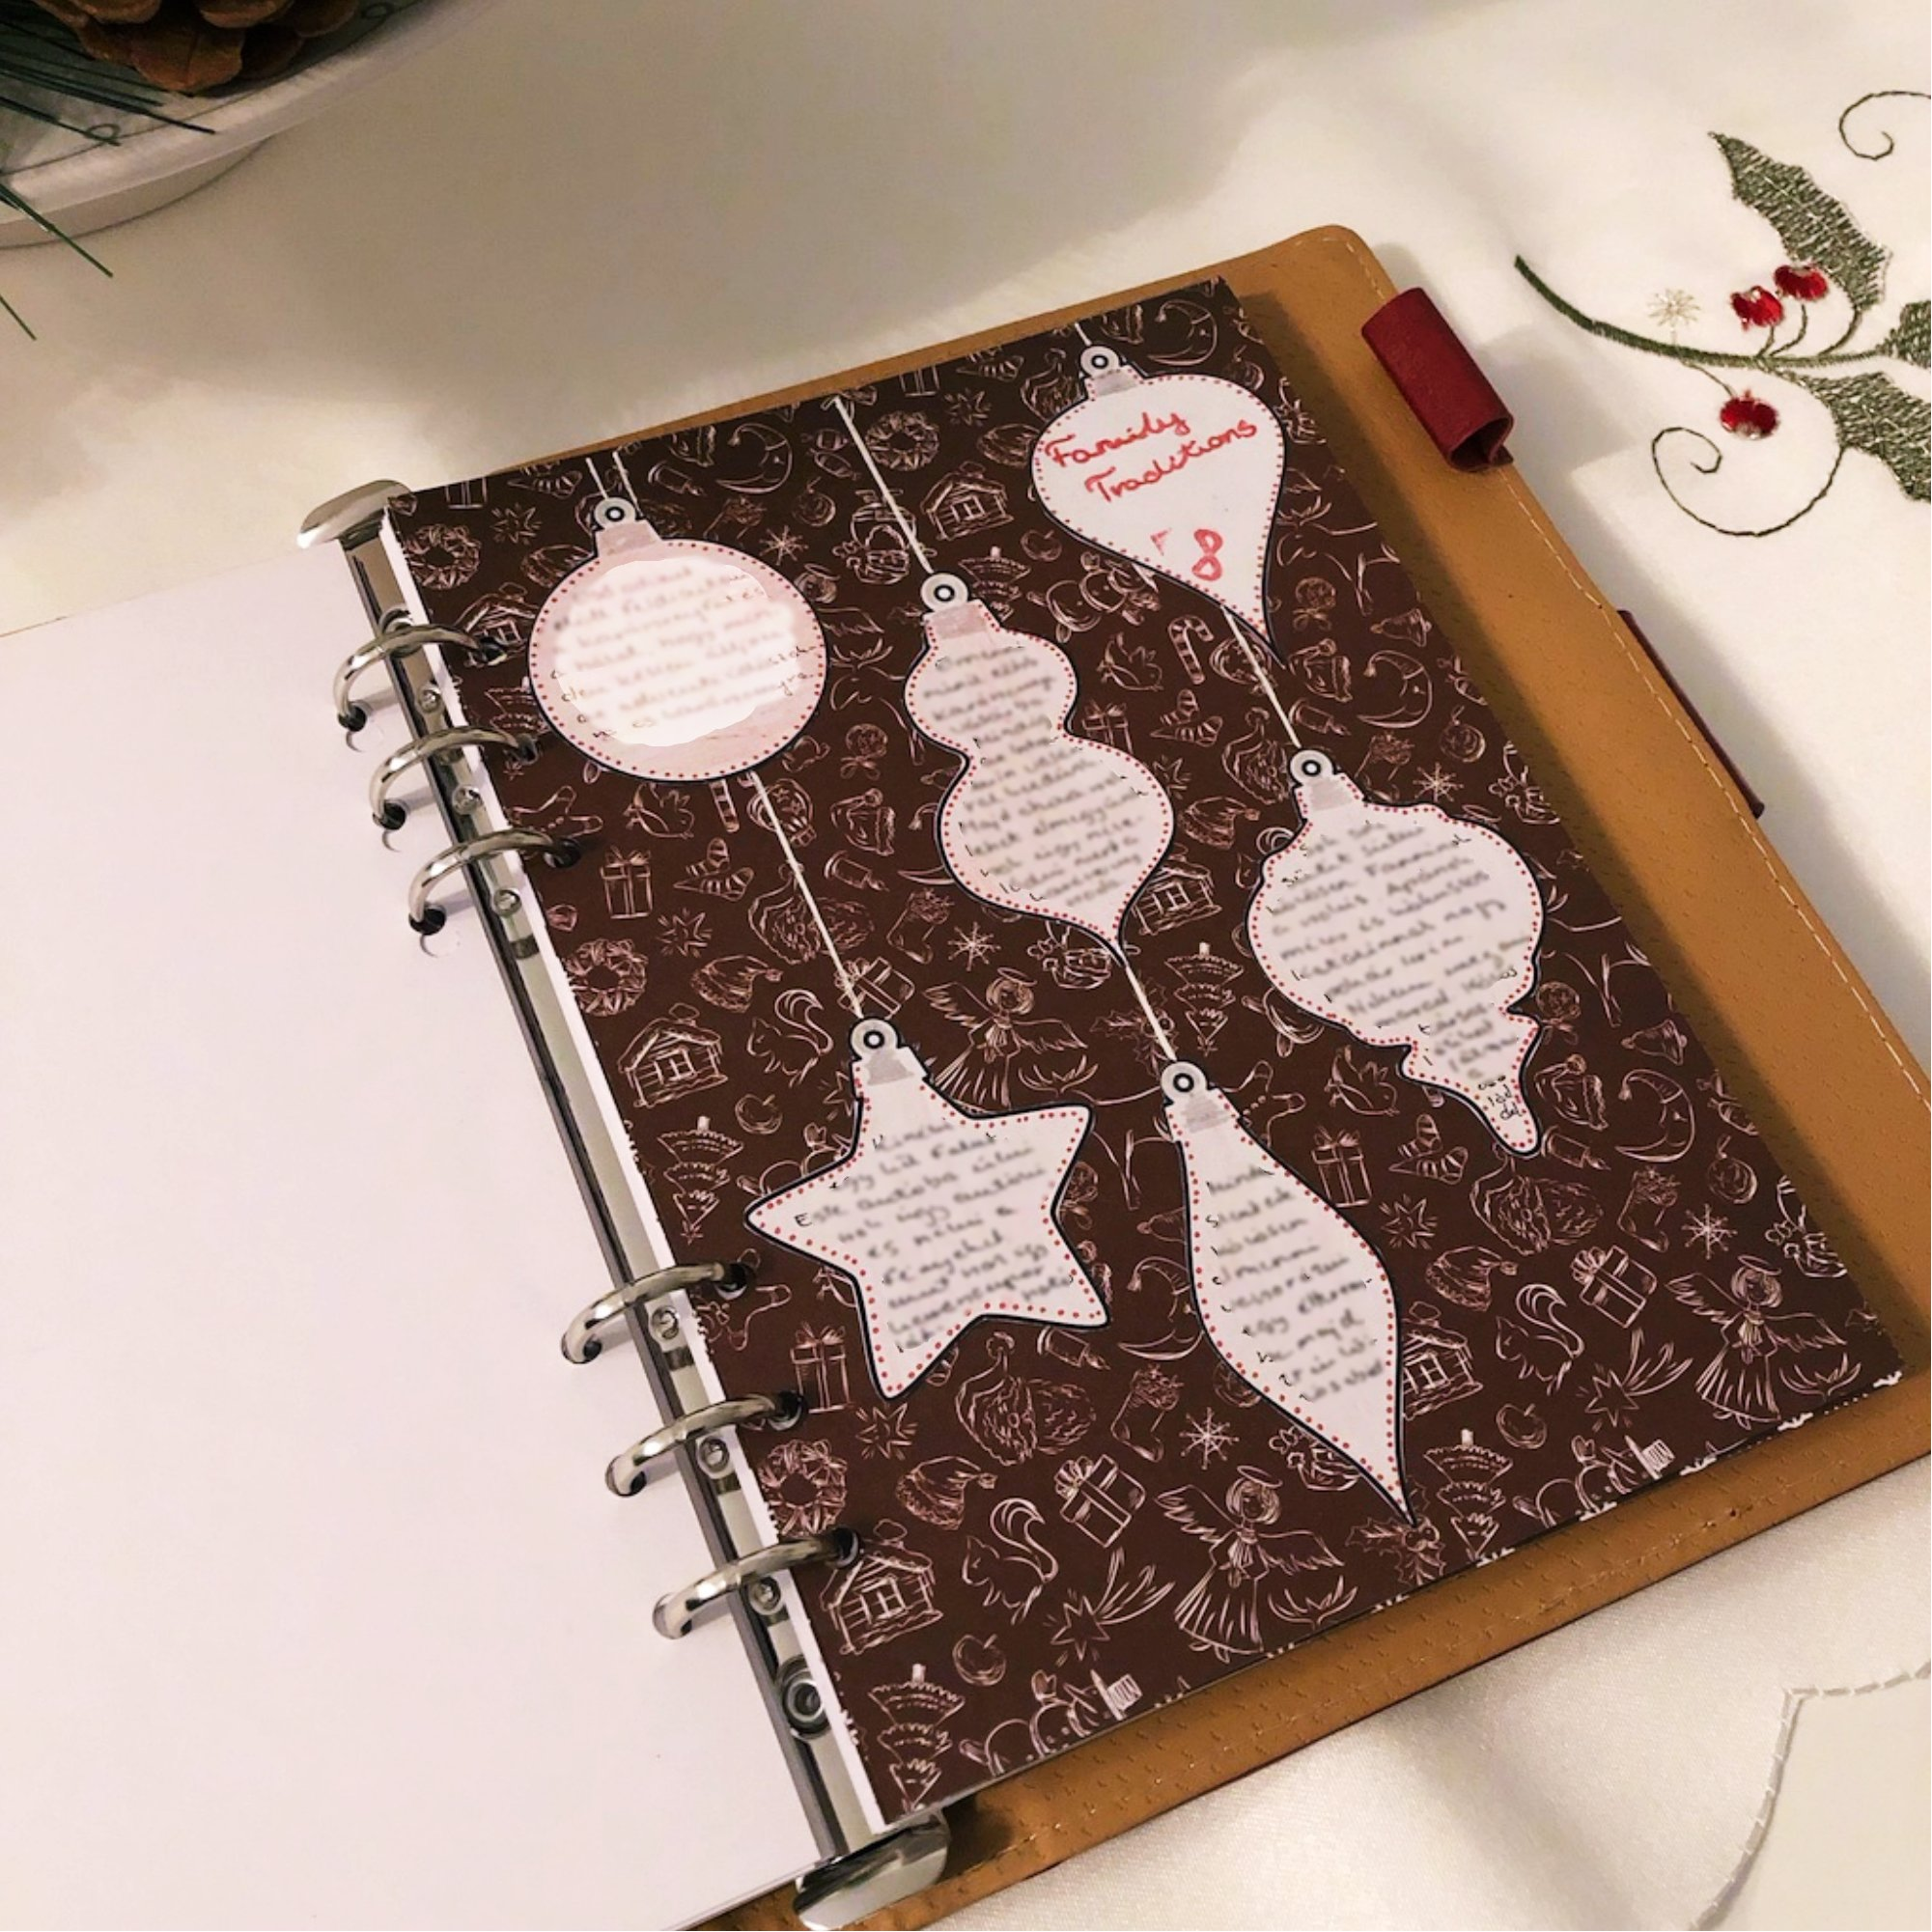 Creative journaling - December daily memories Day 8 - itstartswithacoffee.com #creativejournaling #journaling #daily